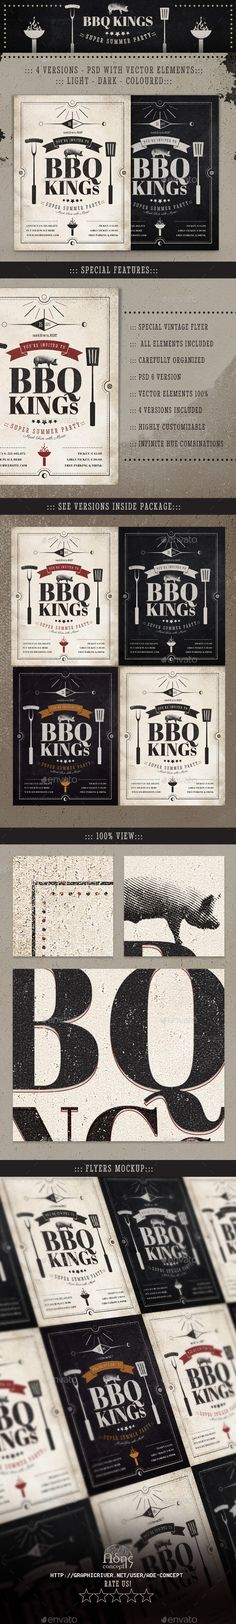 BBQ Kings - Vintage Barbecue Flyer Template #design Download: http://graphicriver.net/item/bbq-kings-vintage-barbecue-flyer/12451507?ref=ksioks